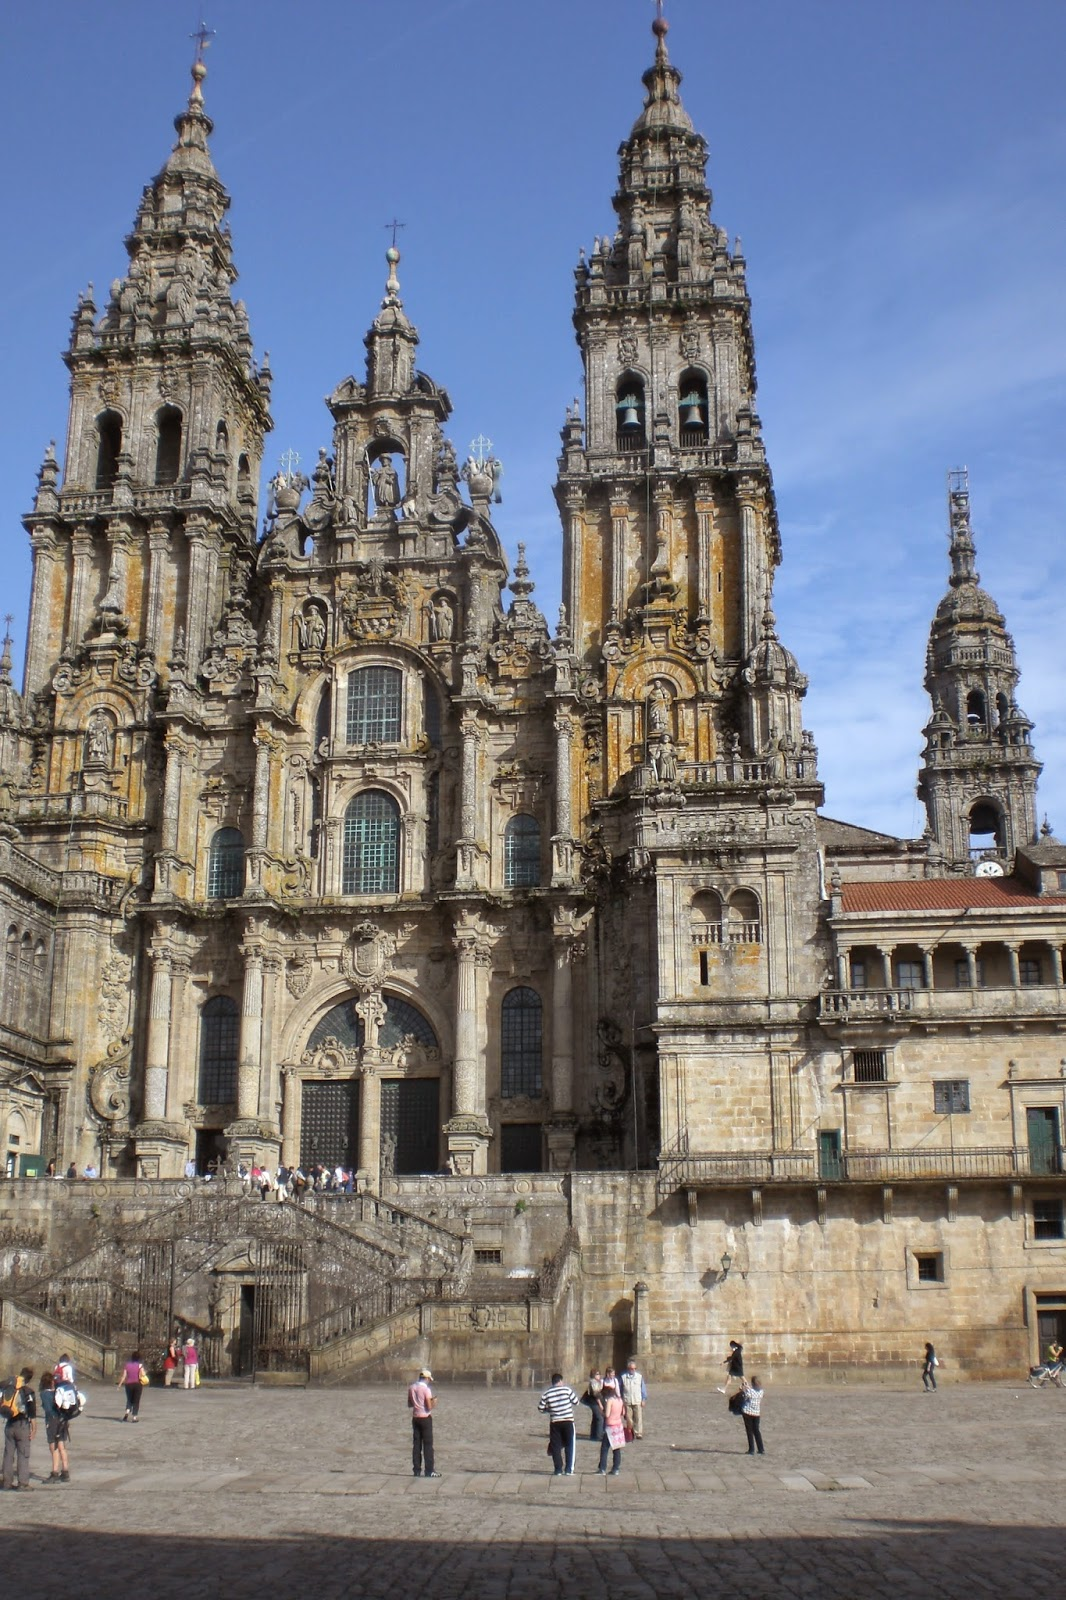 Santiago de Compostela cathedral is said to be the final resting place of the apostle James